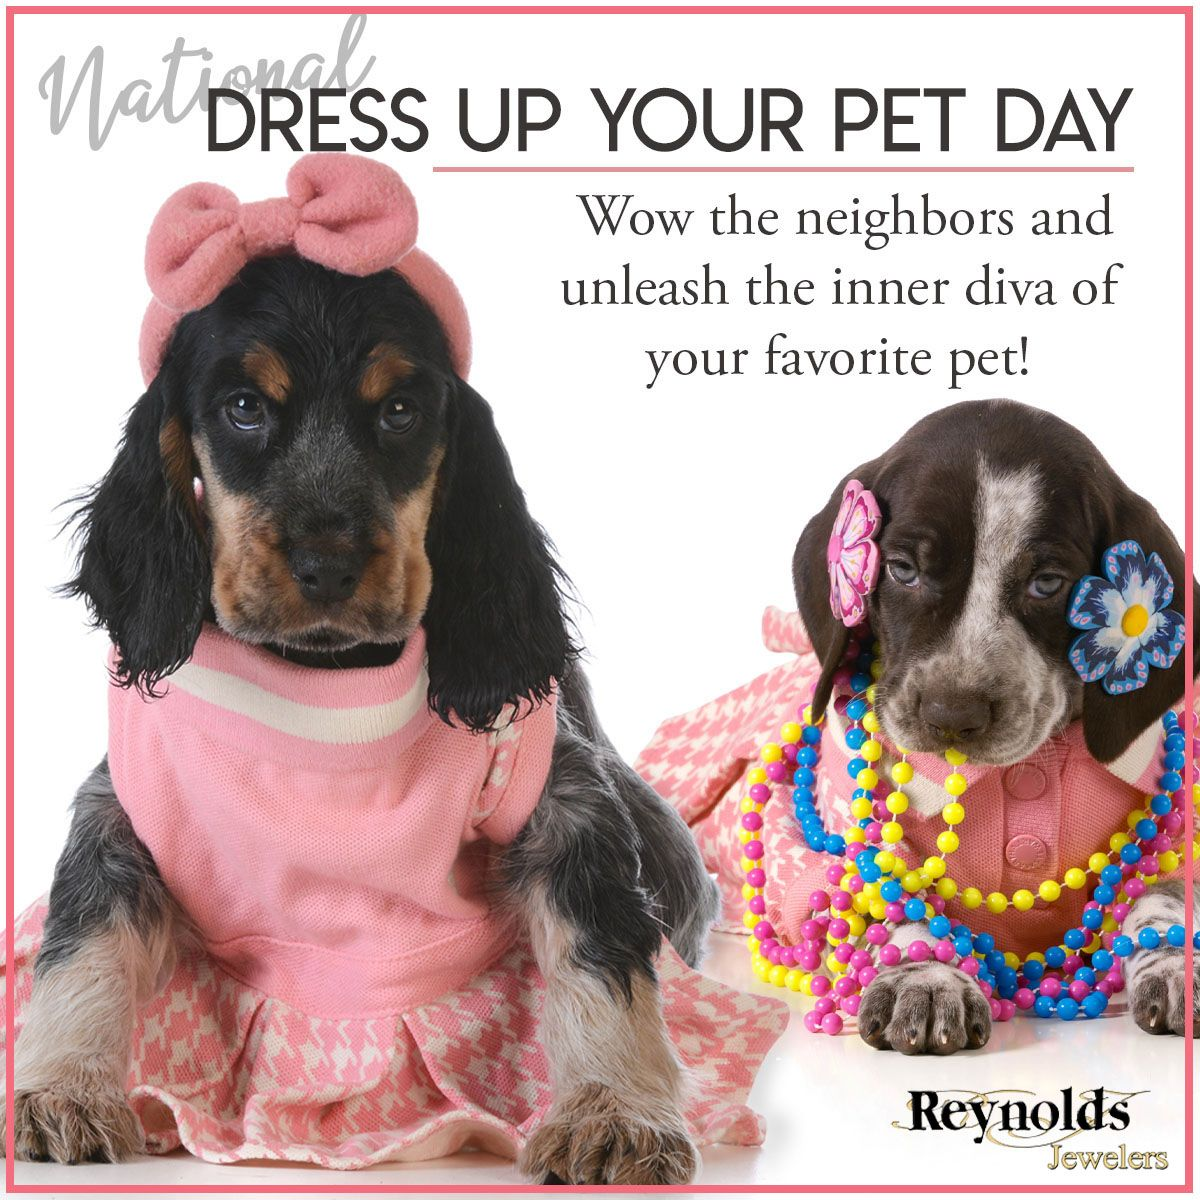 It's National Dress Up Your Pet Day! Share your favorite